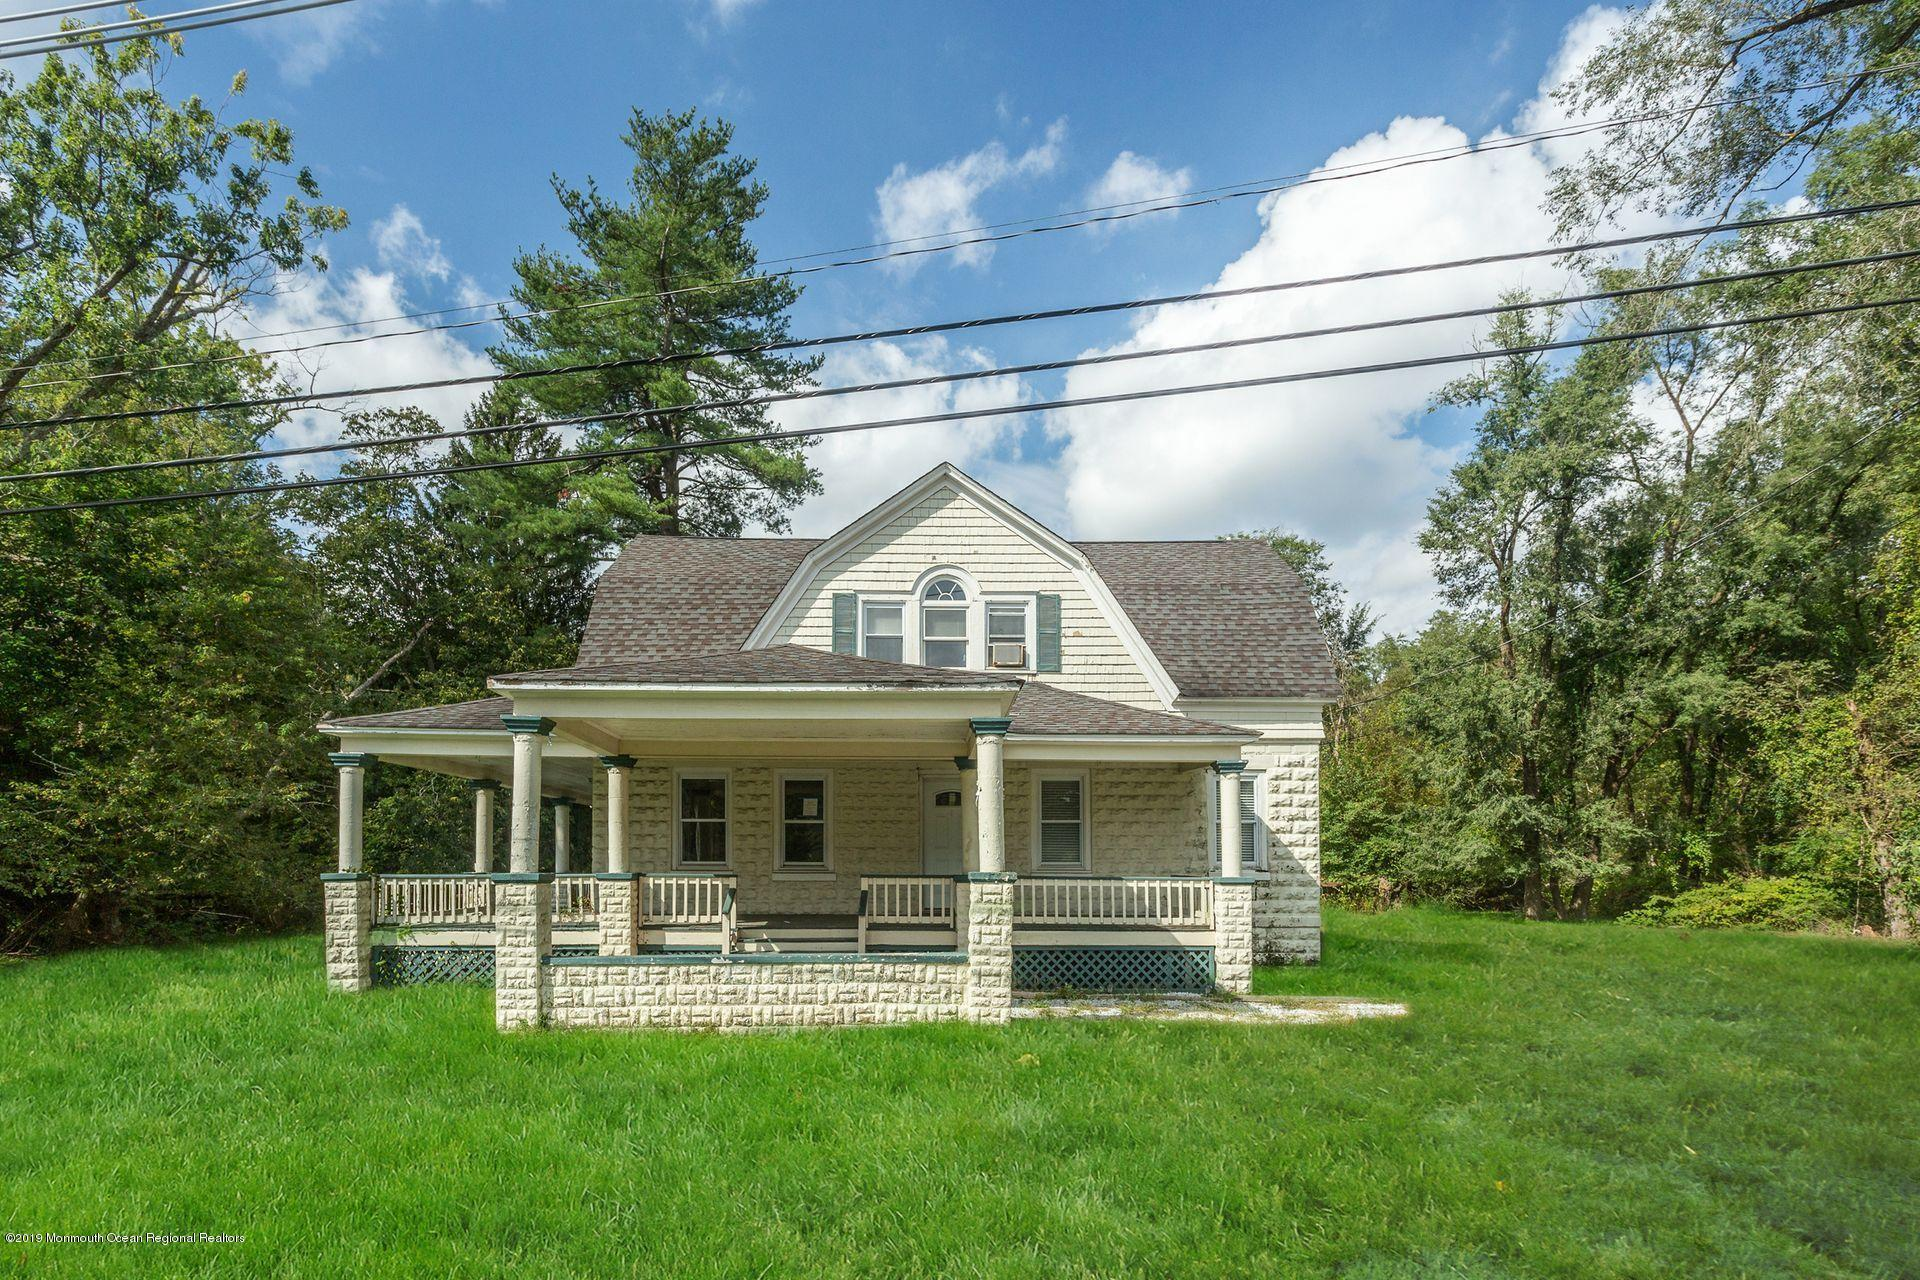 howell homes for sale in monmouth county nj homes in howell rh buysellmonmouth com